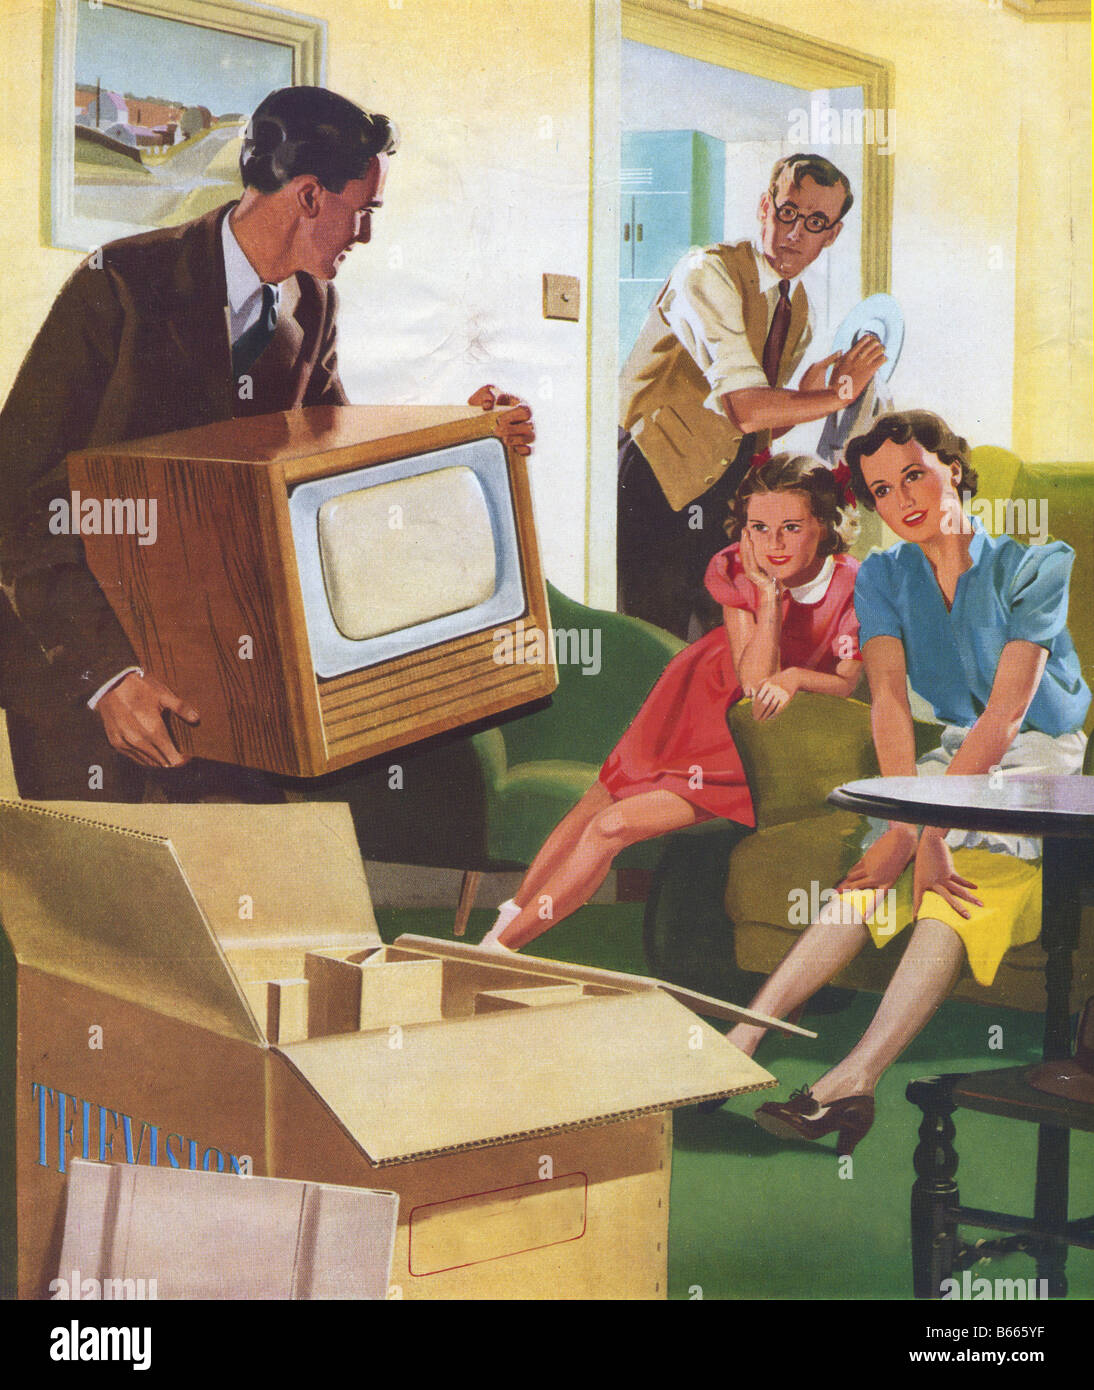 arrival of a new TV 1950 - Stock Image